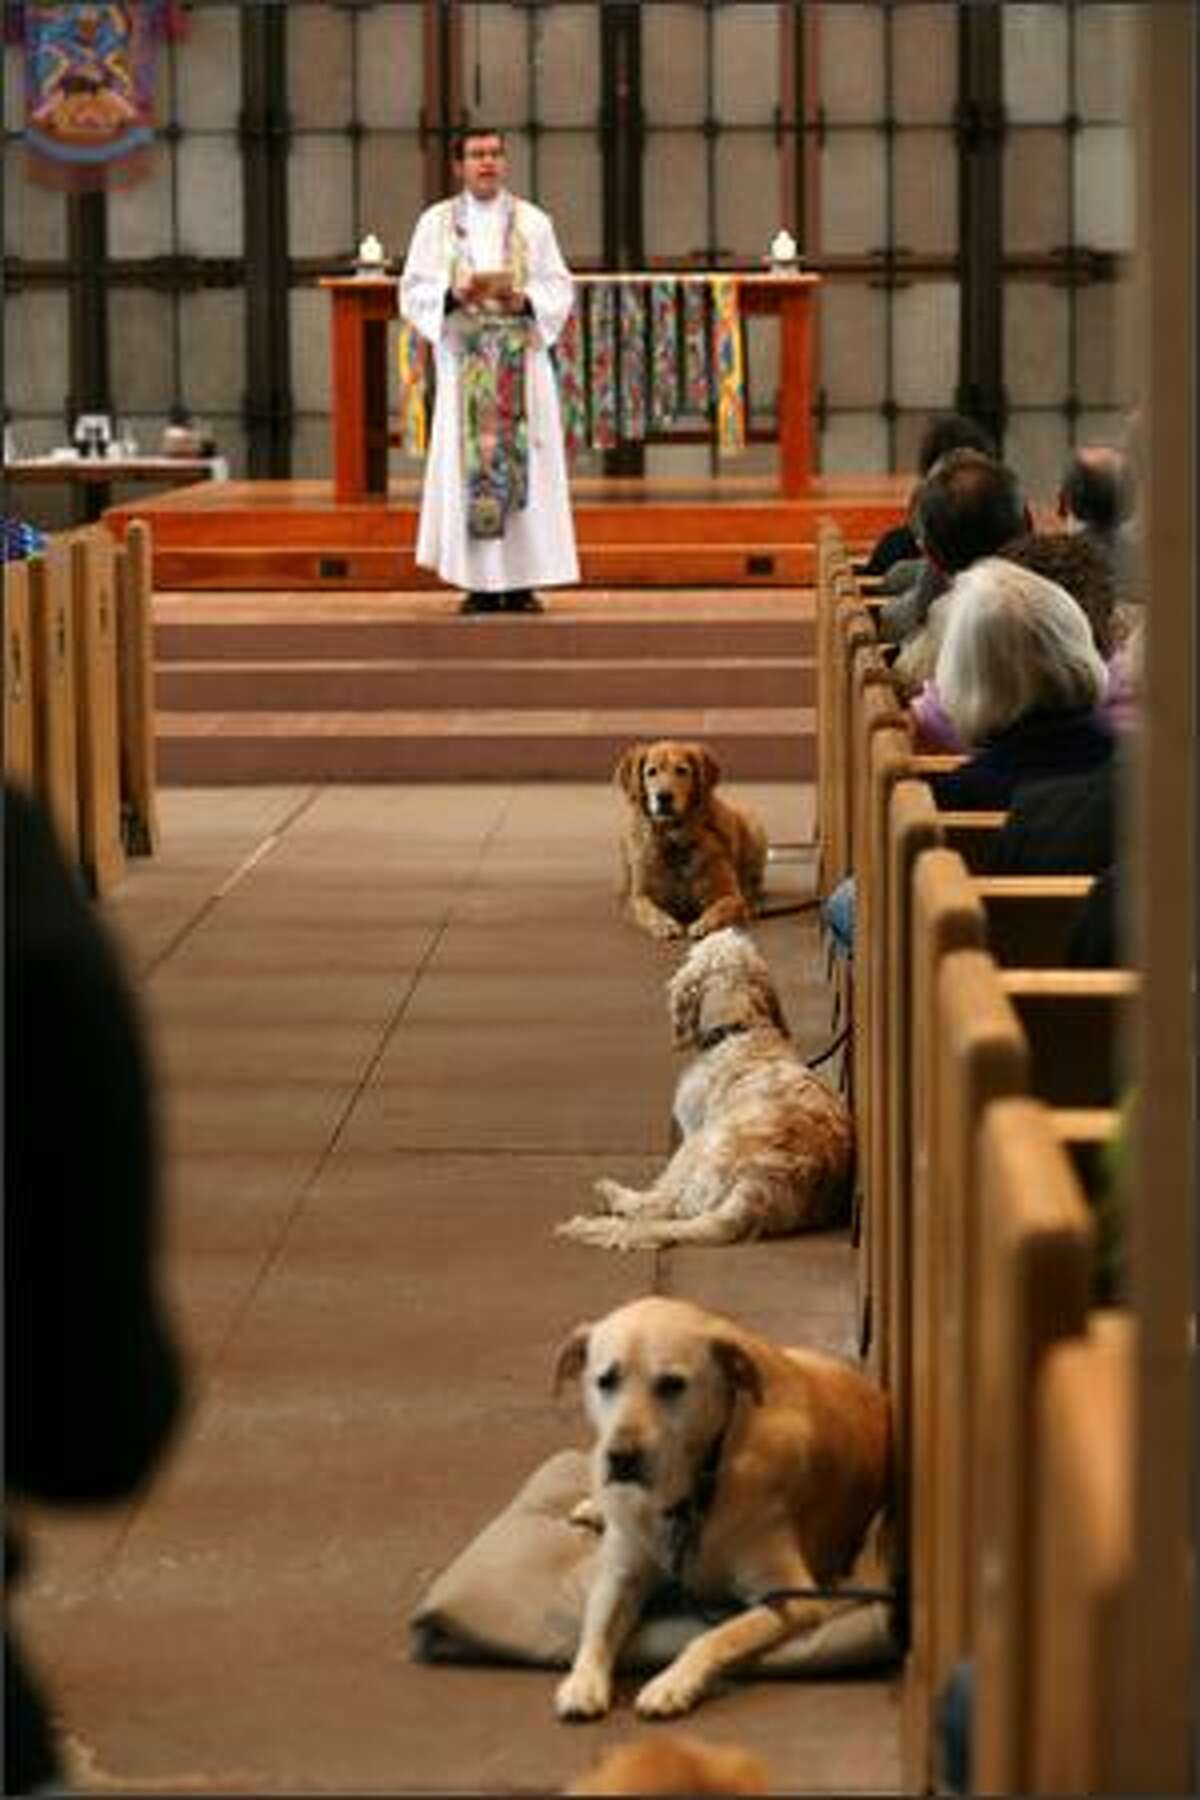 The Very Rev. Robert Taylor, dean of St. Mark's Cathedral, presides over the Blessing of the Animals on St. Francis Sunday.